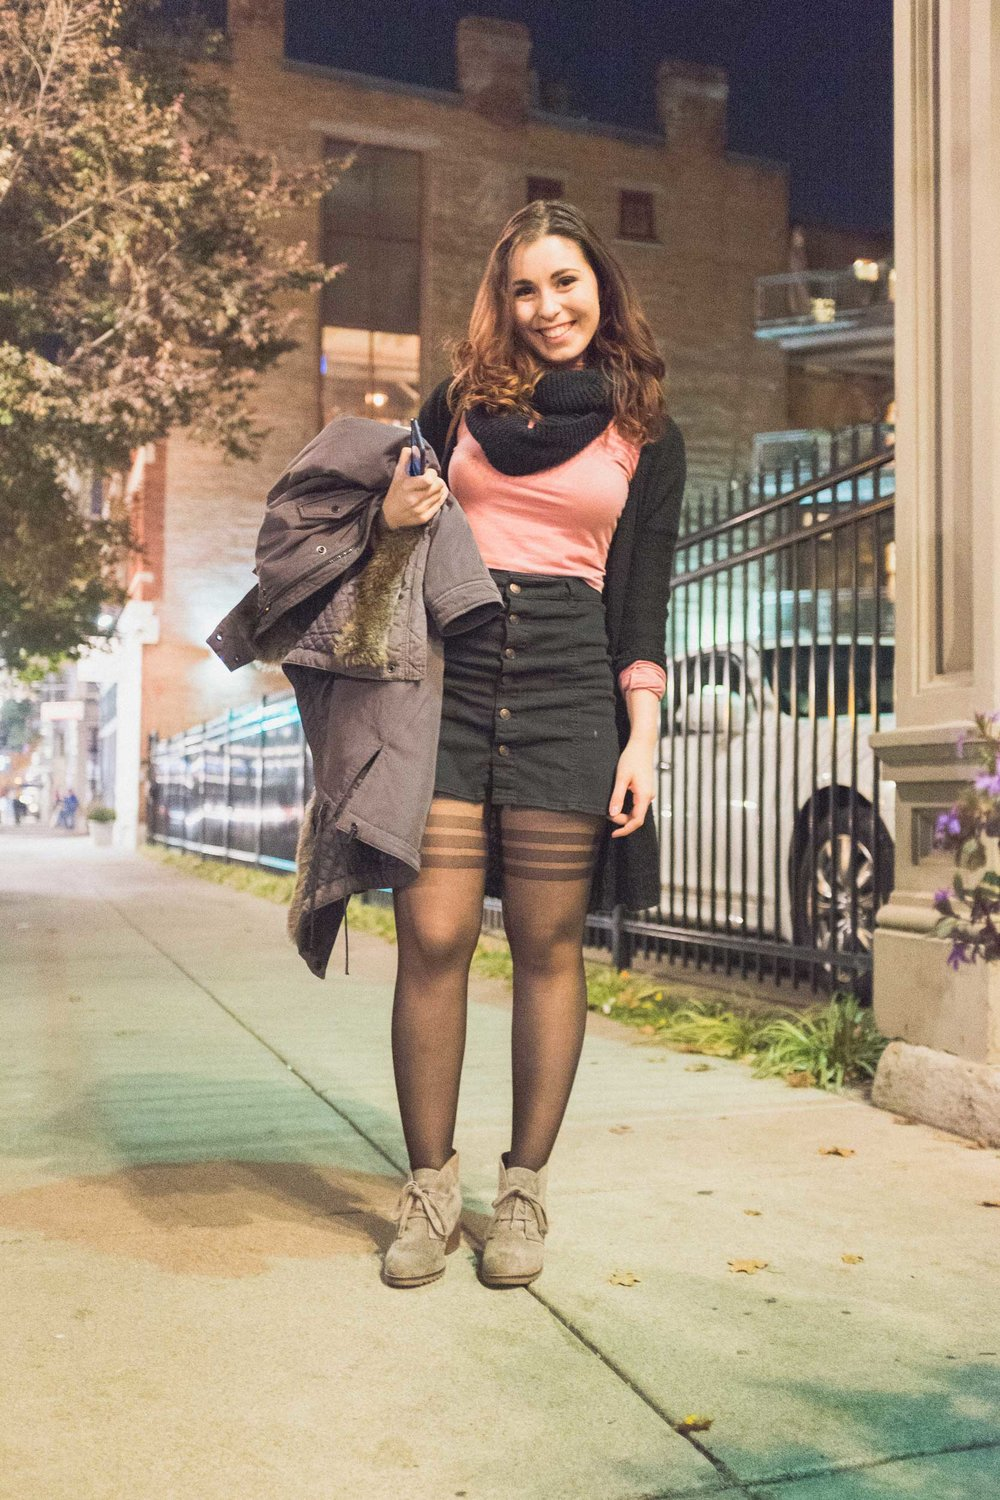 Amanda thrifted her shoes and loved them so much she built an outfit around them.